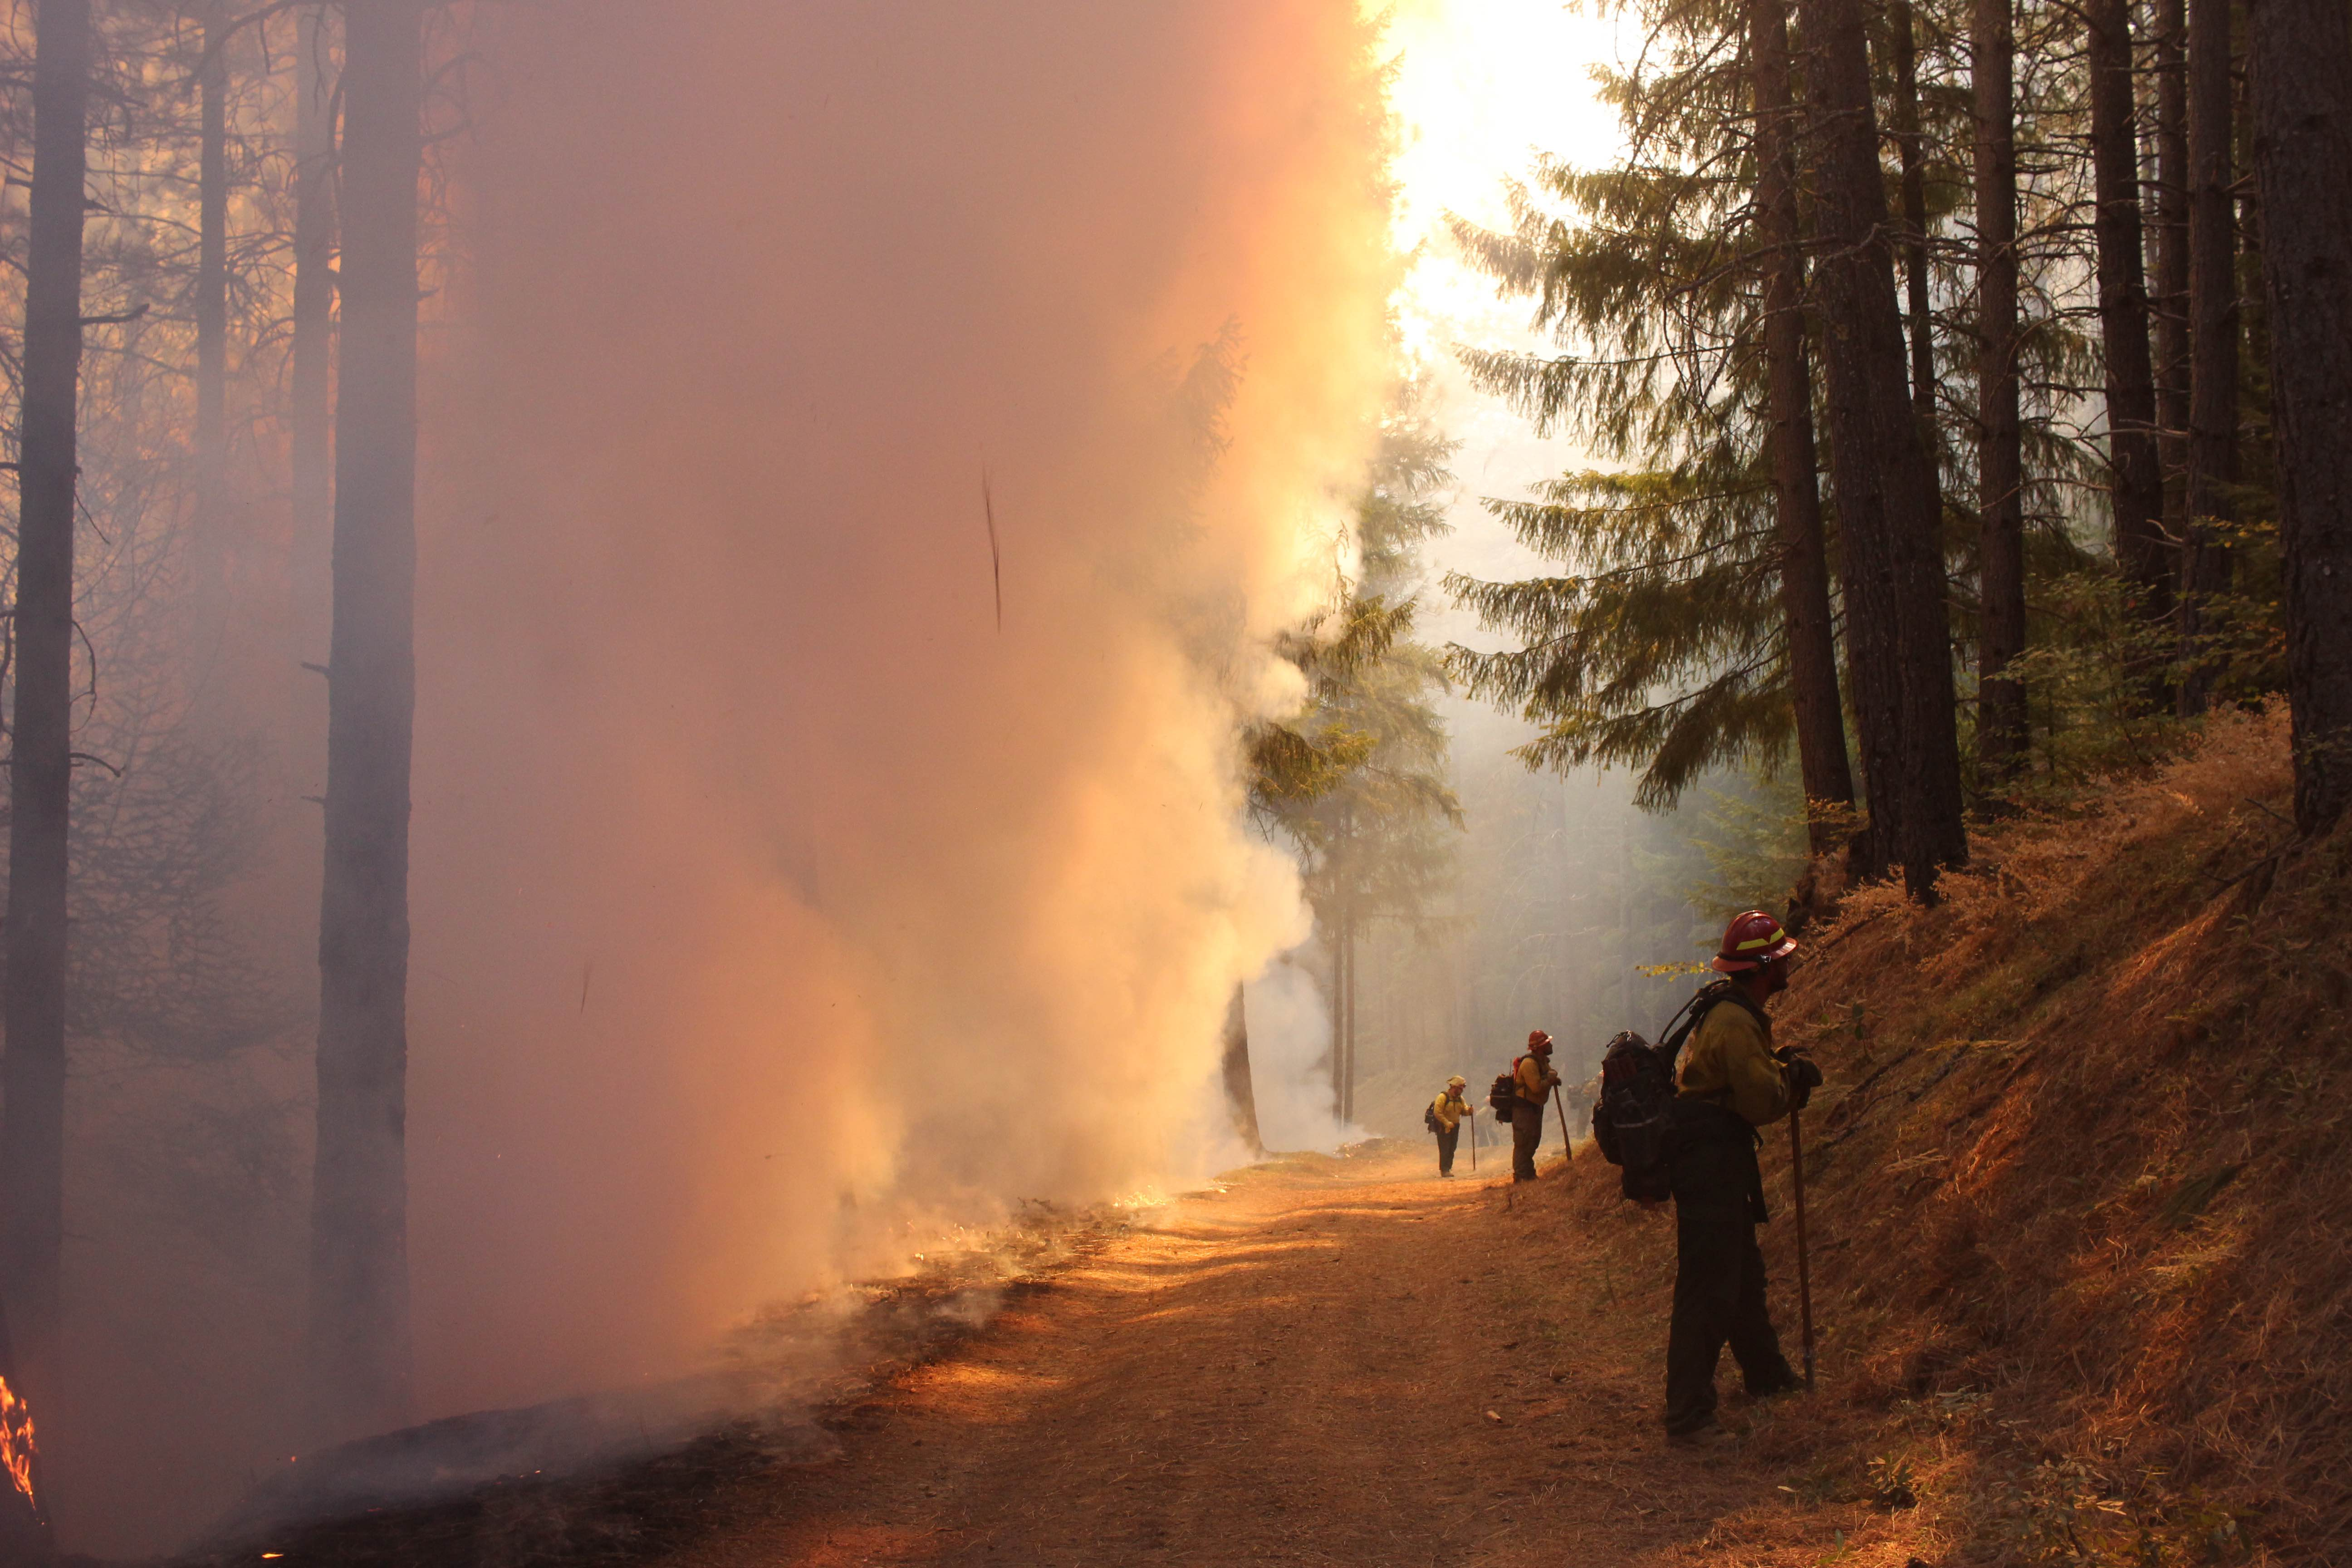 Firefighters battling the August Complex